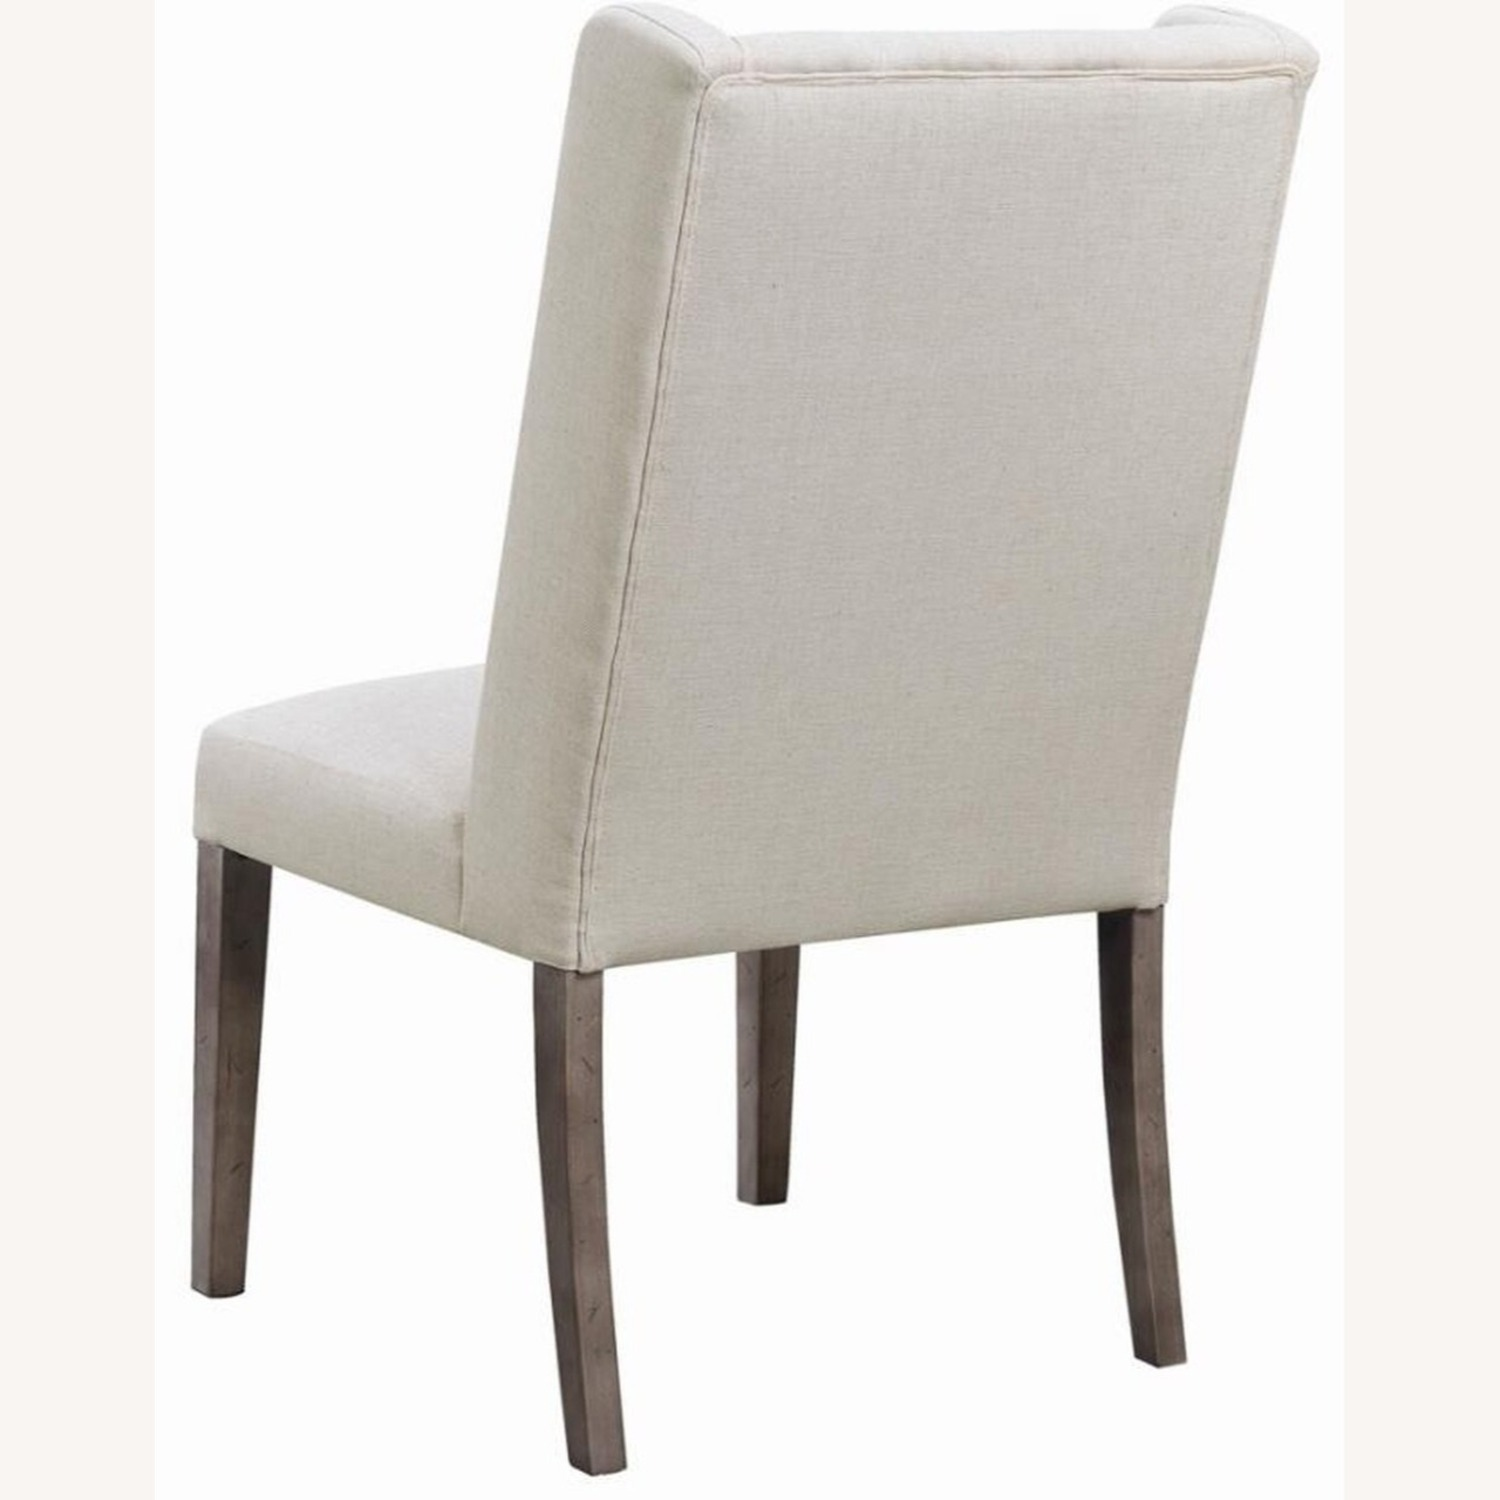 Transitional Side Chair In Beige Fabric - image-3